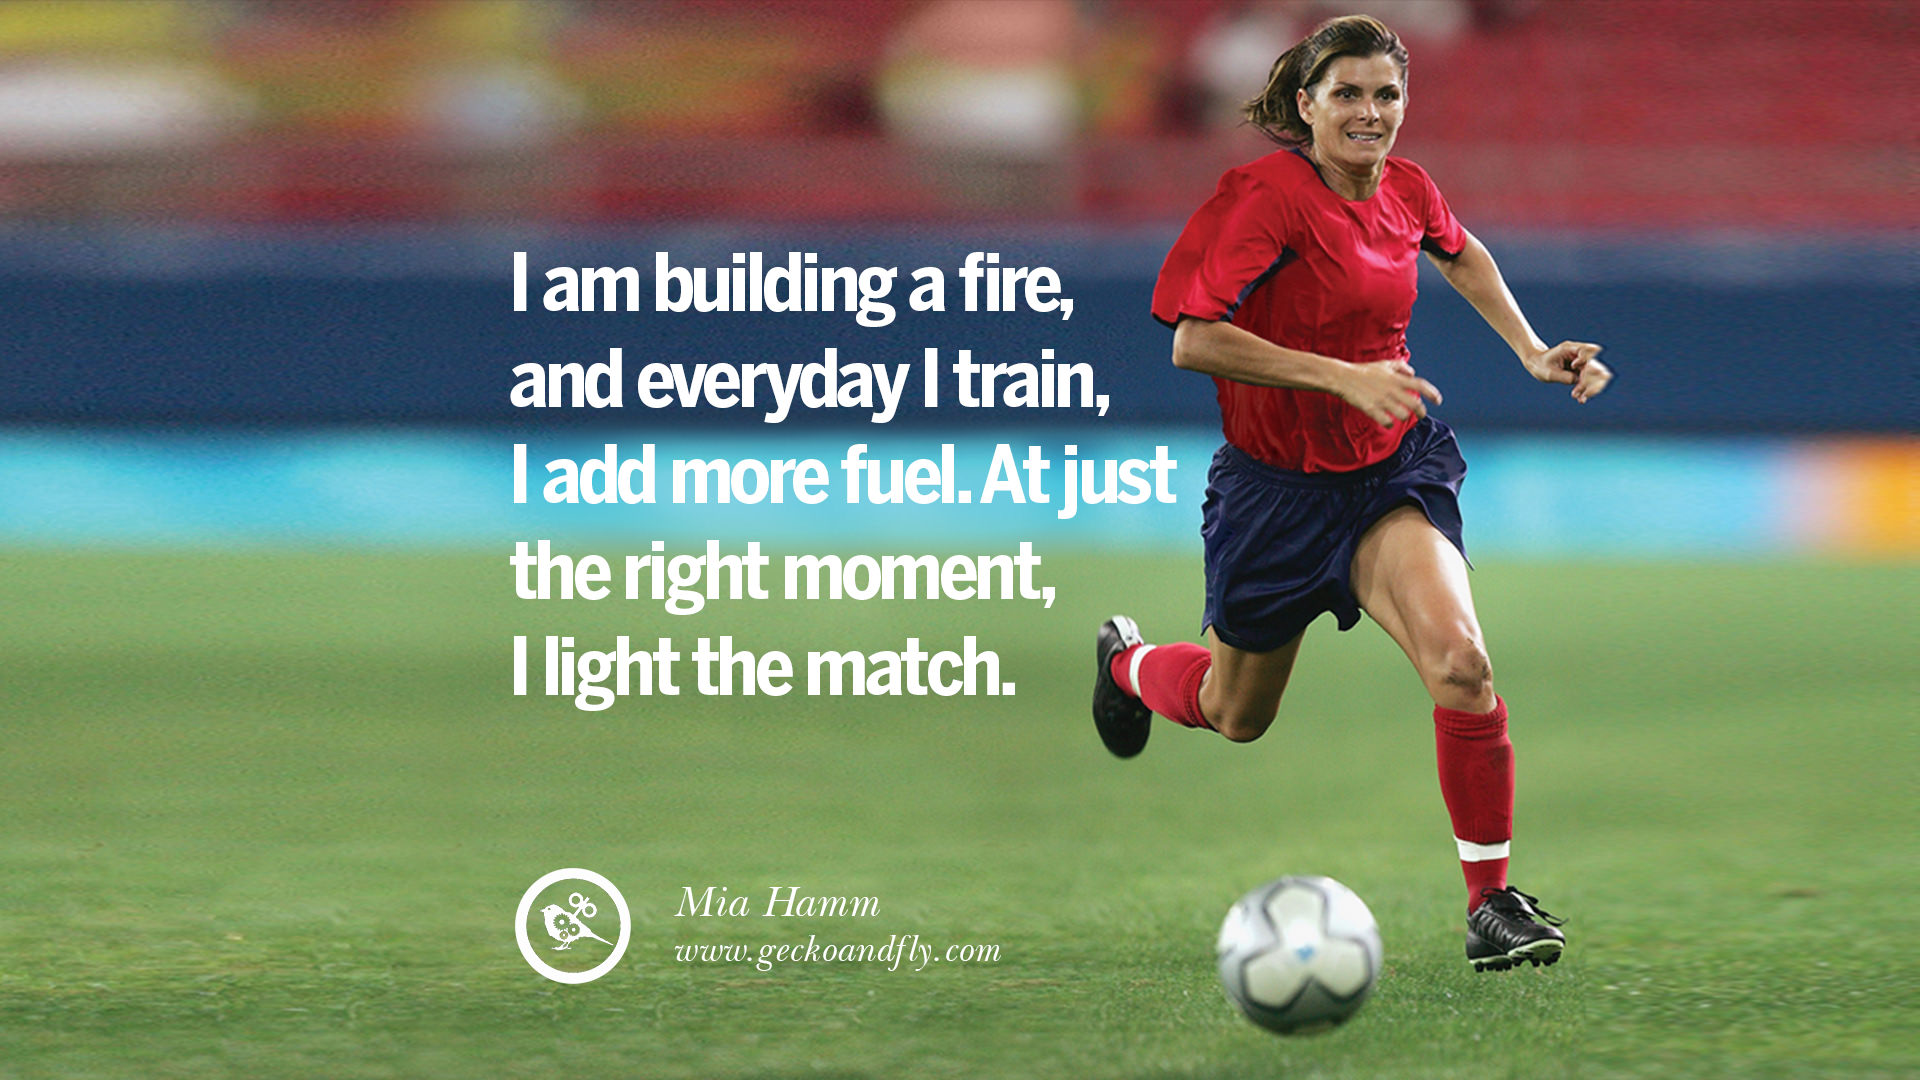 Facebook Wallpaper Quotes From Soccer Players 31 Inspirational Quotes By Olympic Athletes On The Spirit